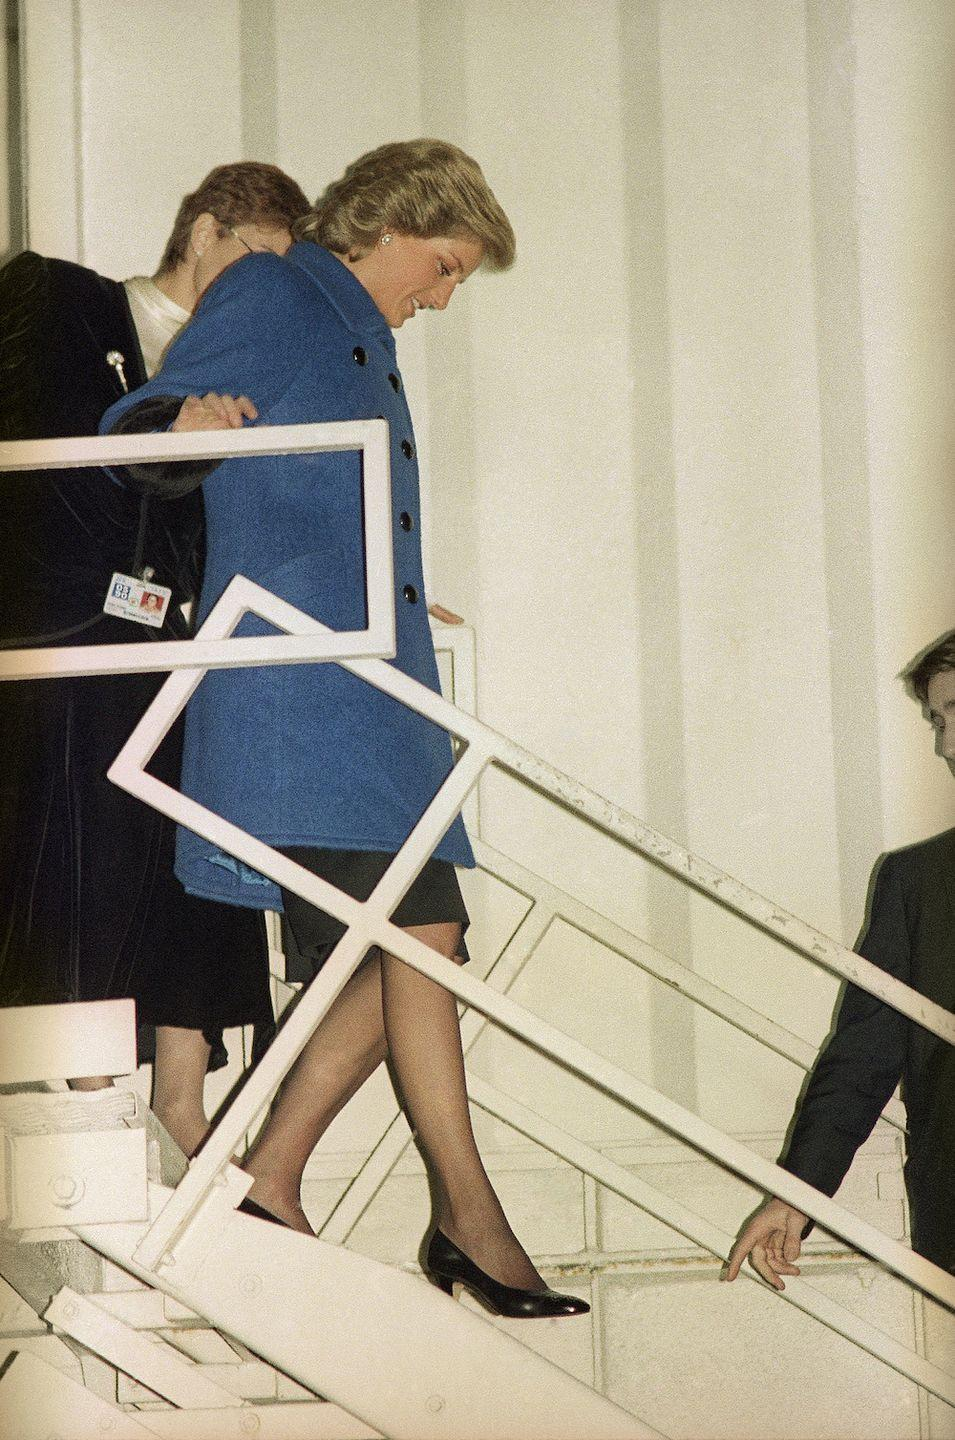 <p>She! has! ARRIVED! Here's Diana walking down some steps at John F. Kennedy International Airport on February 1, 1989. Never wearing sweats on the plane again after witnessing this perfection. </p>